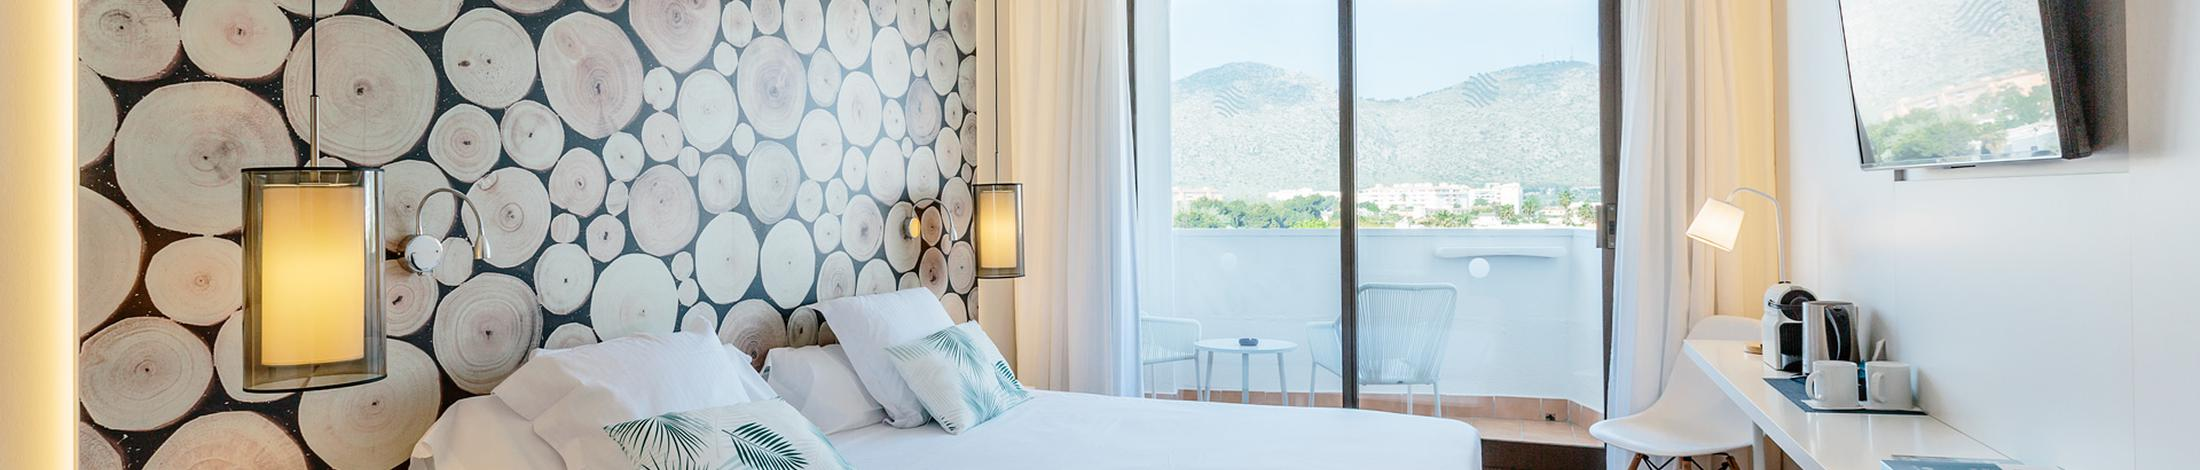 Superior room with pool view aluasoul alcudia bay (adults only)  alcudia, mallorca